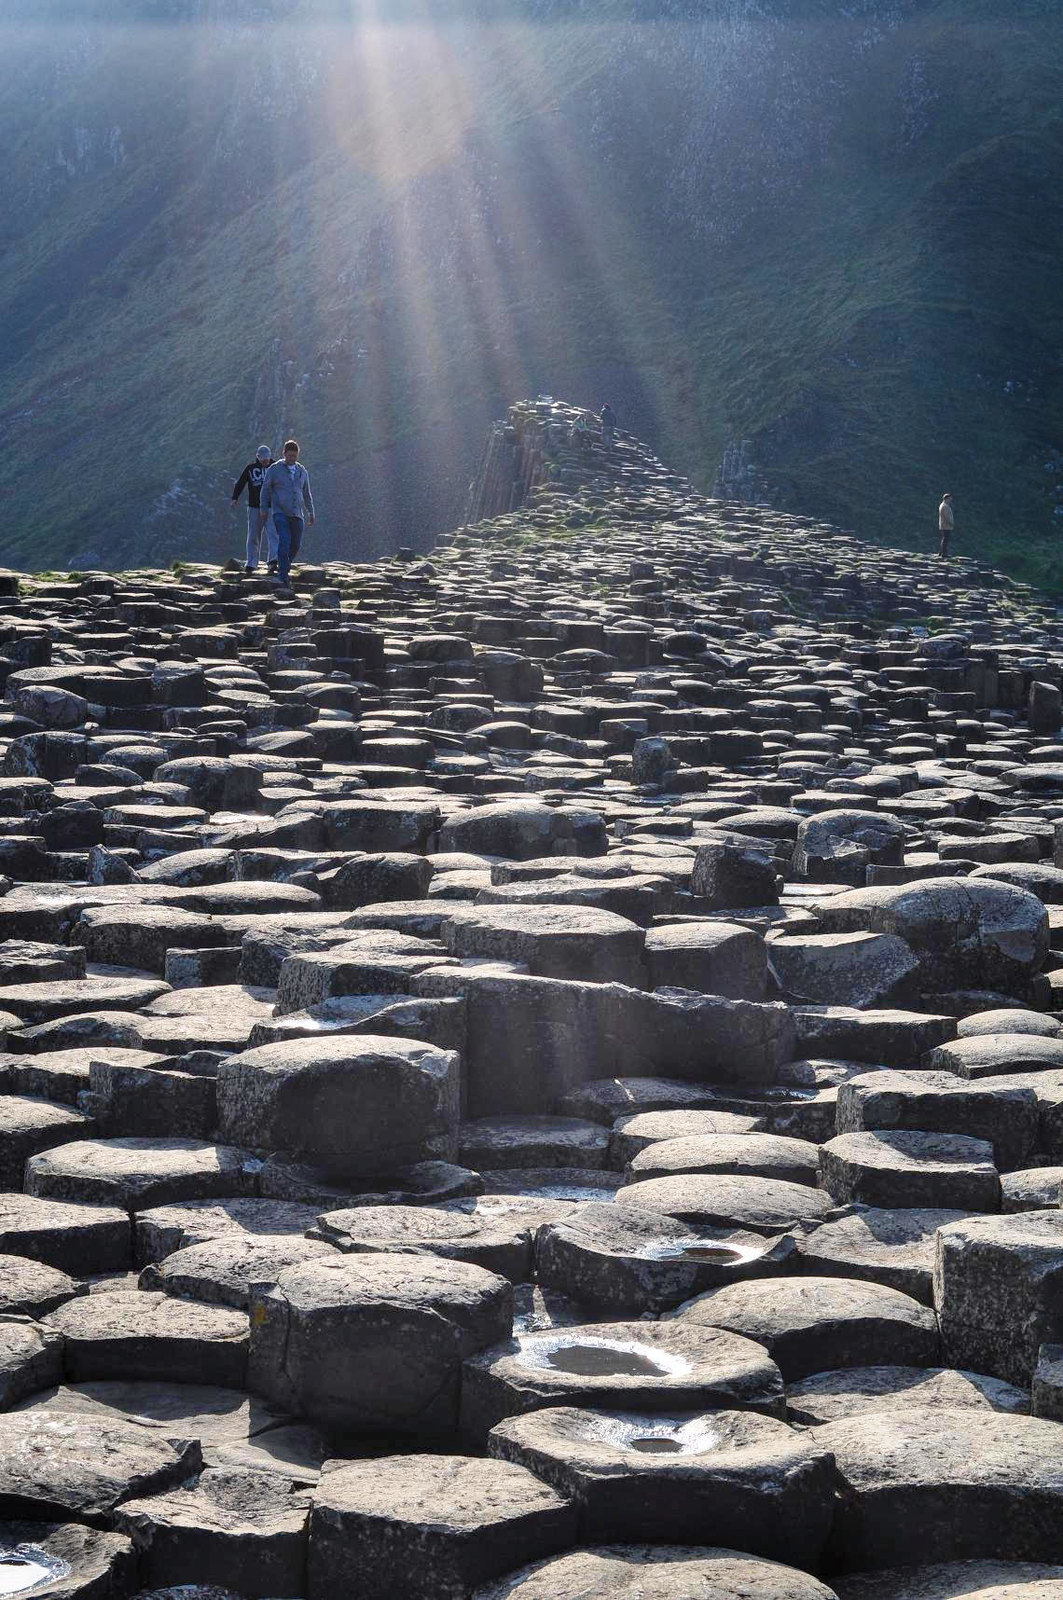 Giant's Causeway, County Antrim, Northern Ireland. Credit Voytazz86